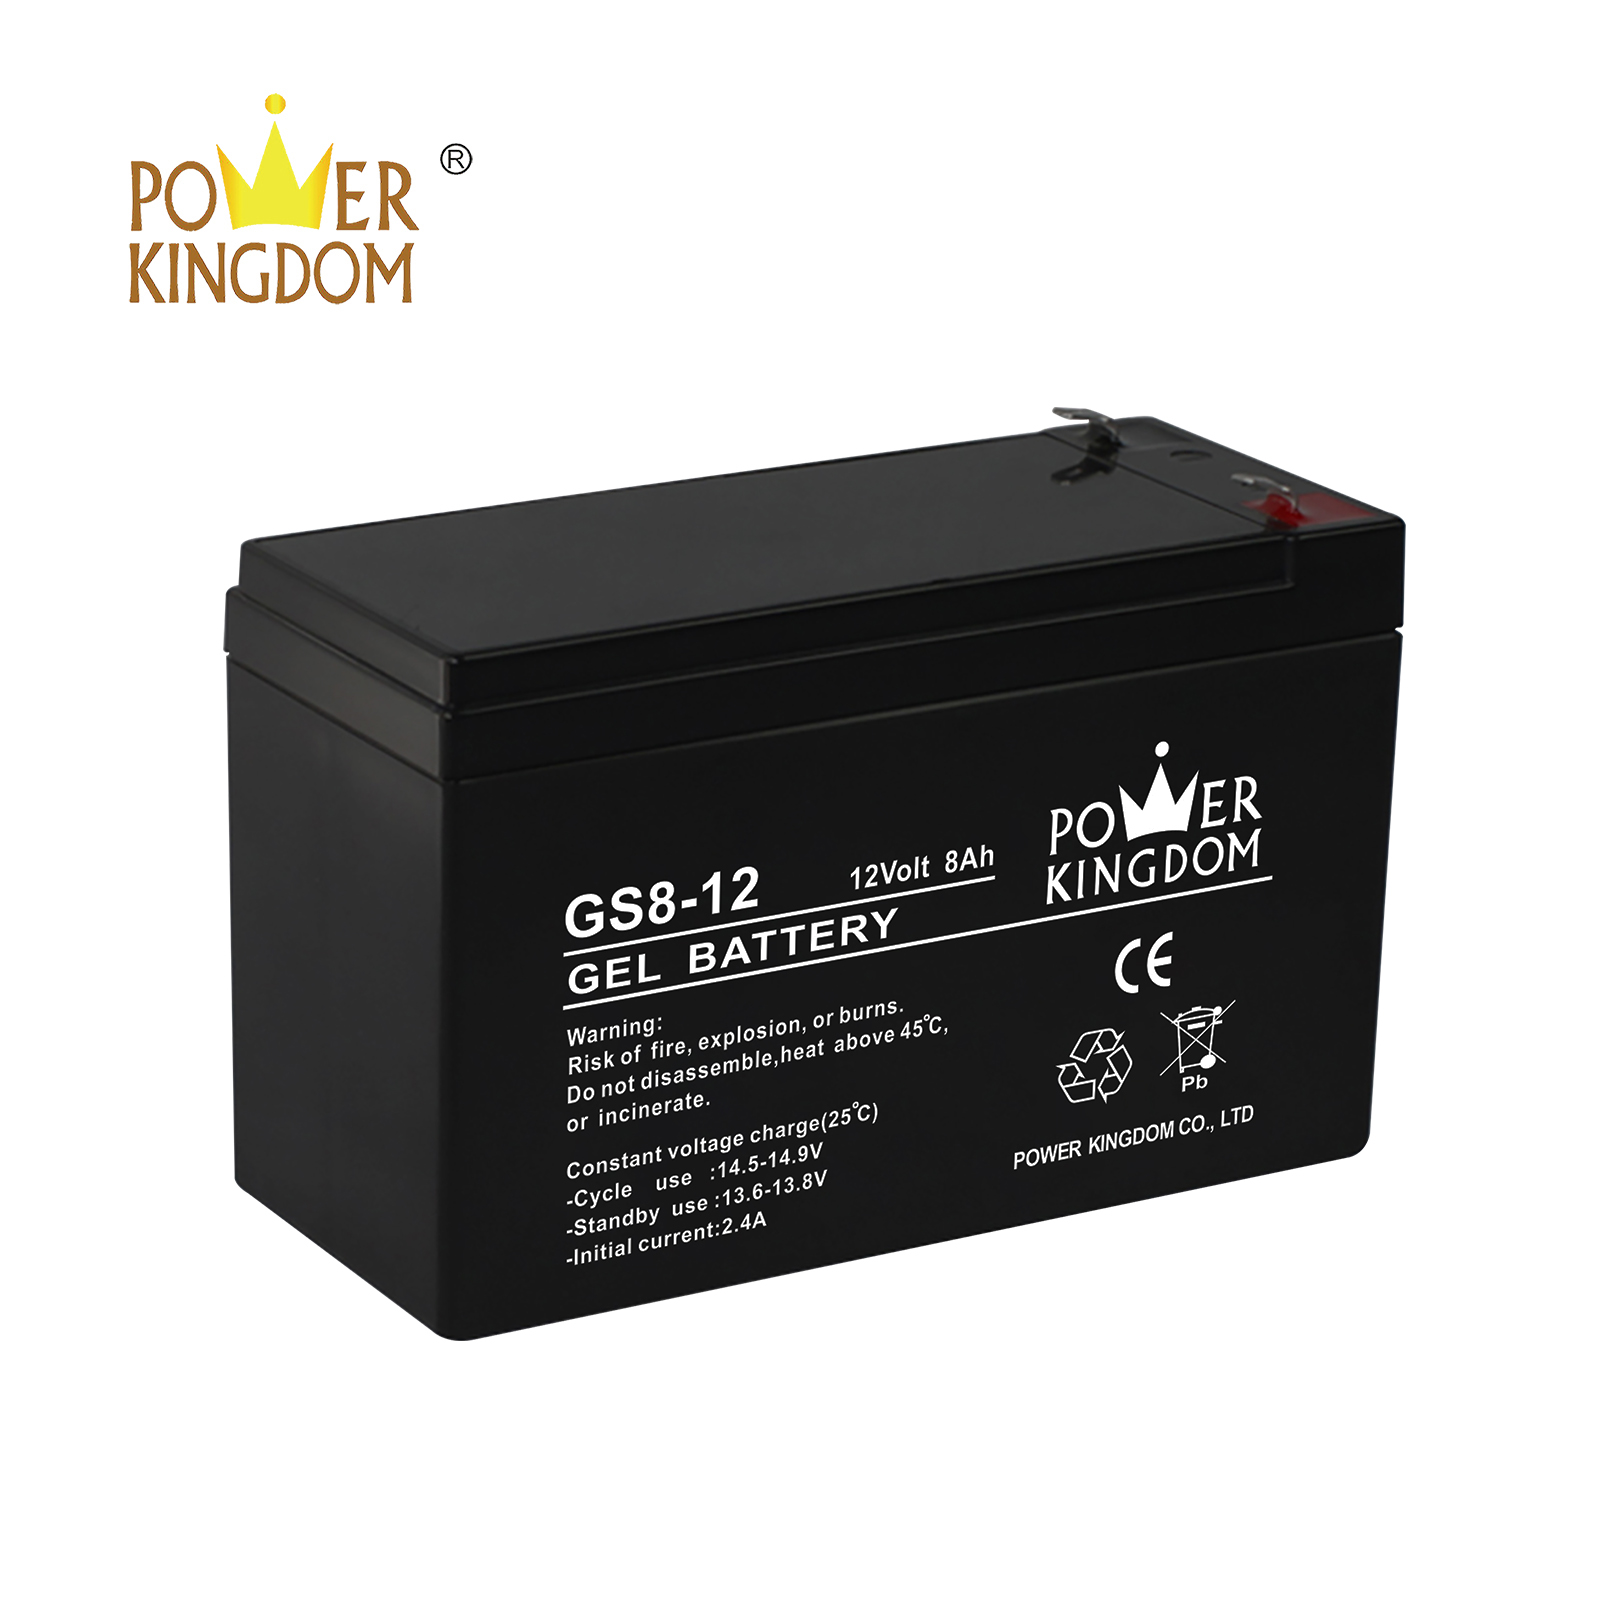 Power Kingdom ups battery pack design solor system-2